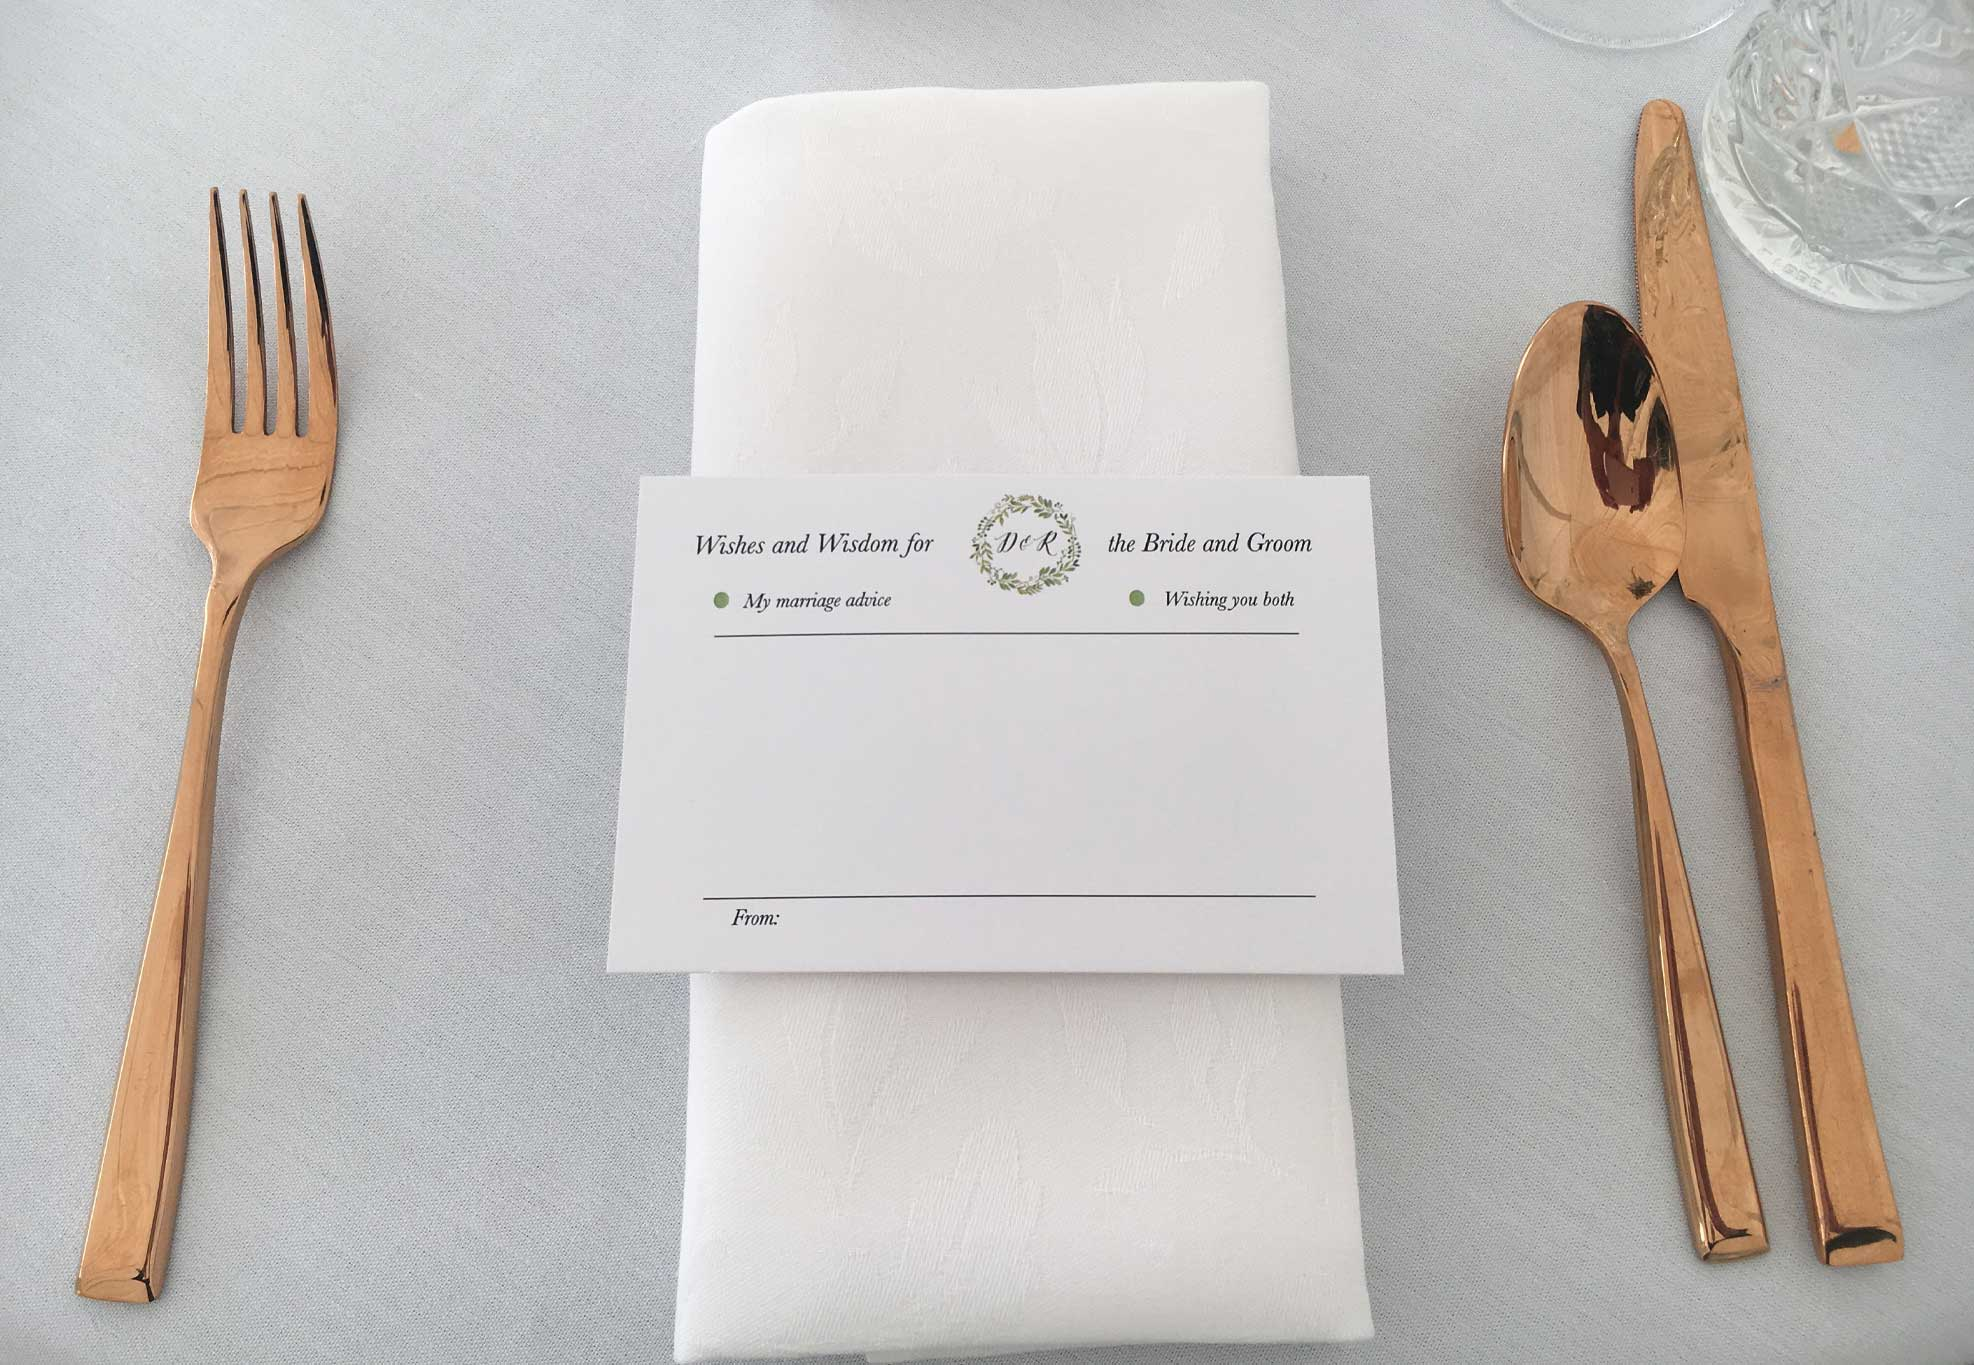 silk-estate-marquee-weddings-and-events-styling-and-hire-copper-cutlery-3